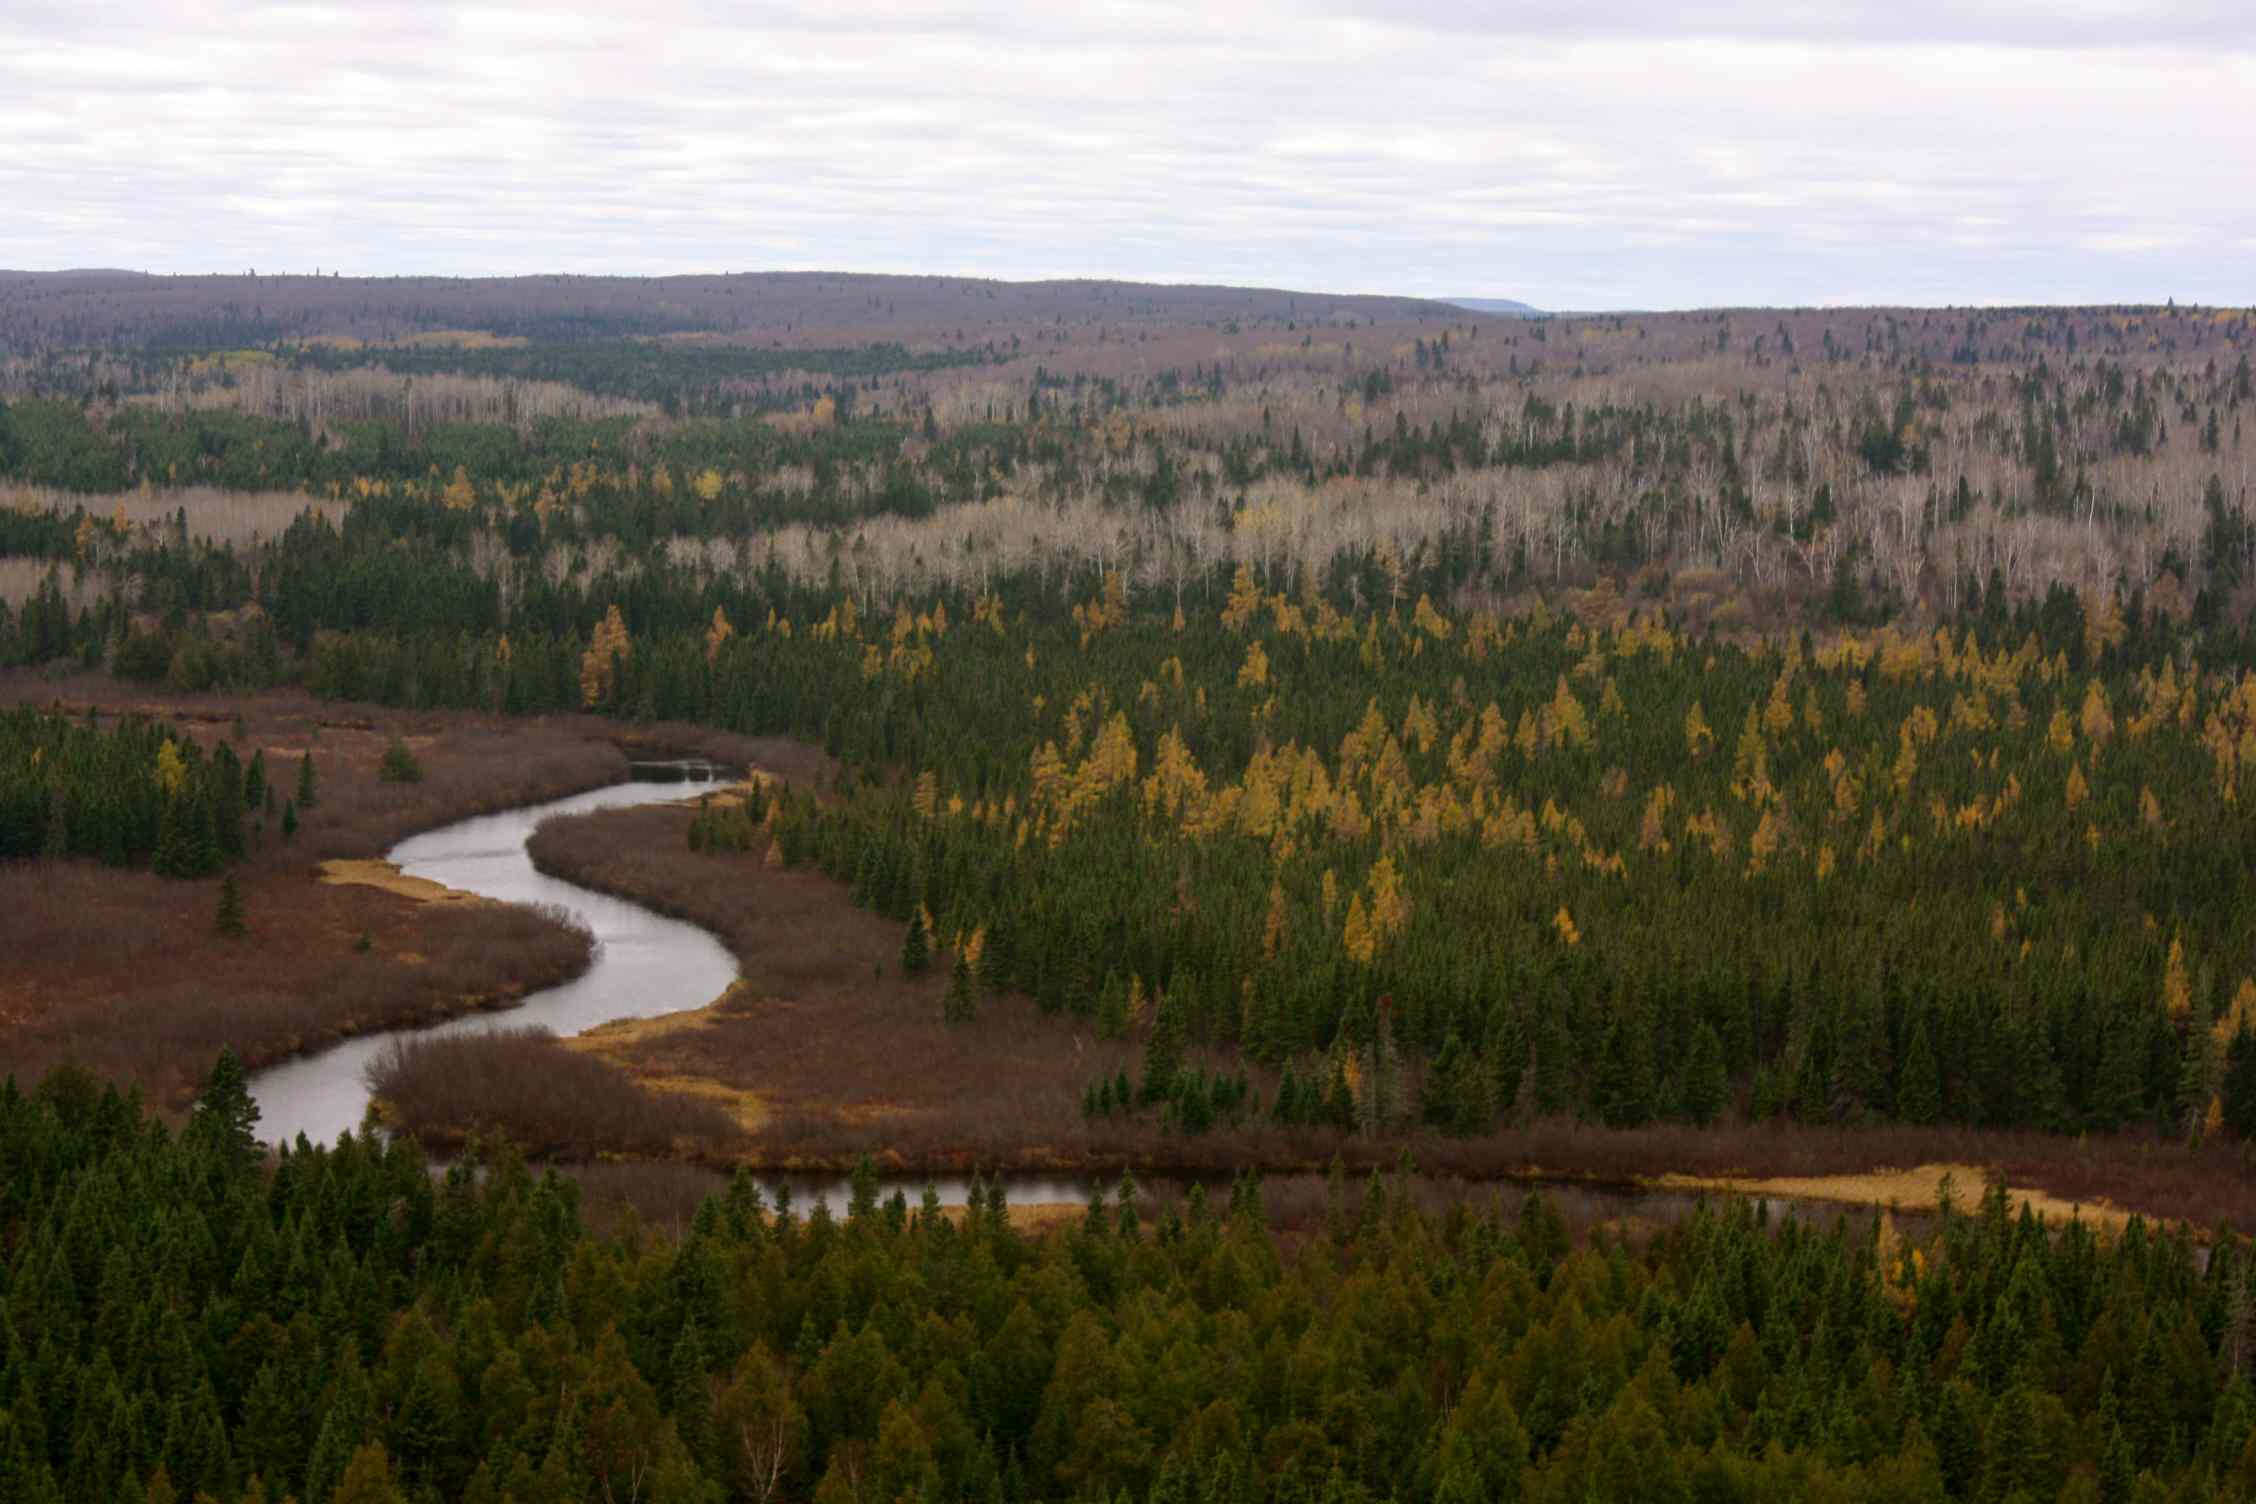 View from the trail of forest and river during fall